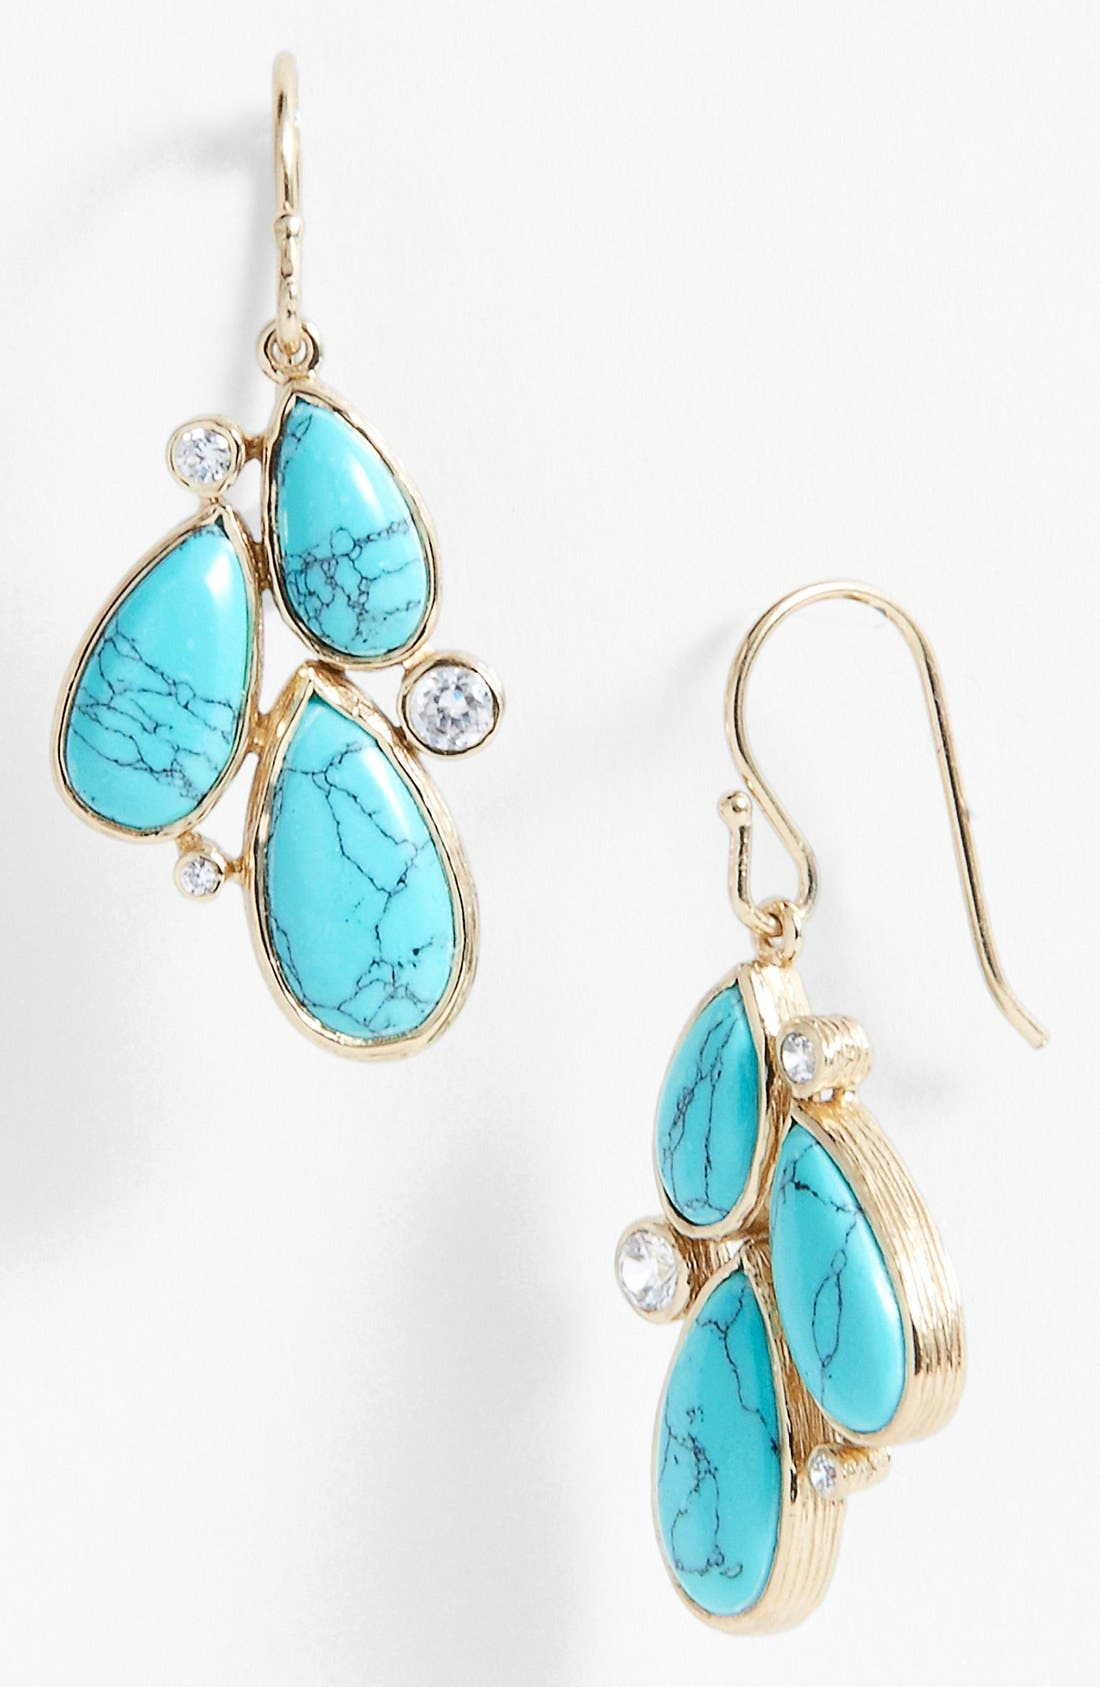 Main Image - Melinda Maria 'Regan' Cluster Drop Earrings (Nordstrom Exclusive)